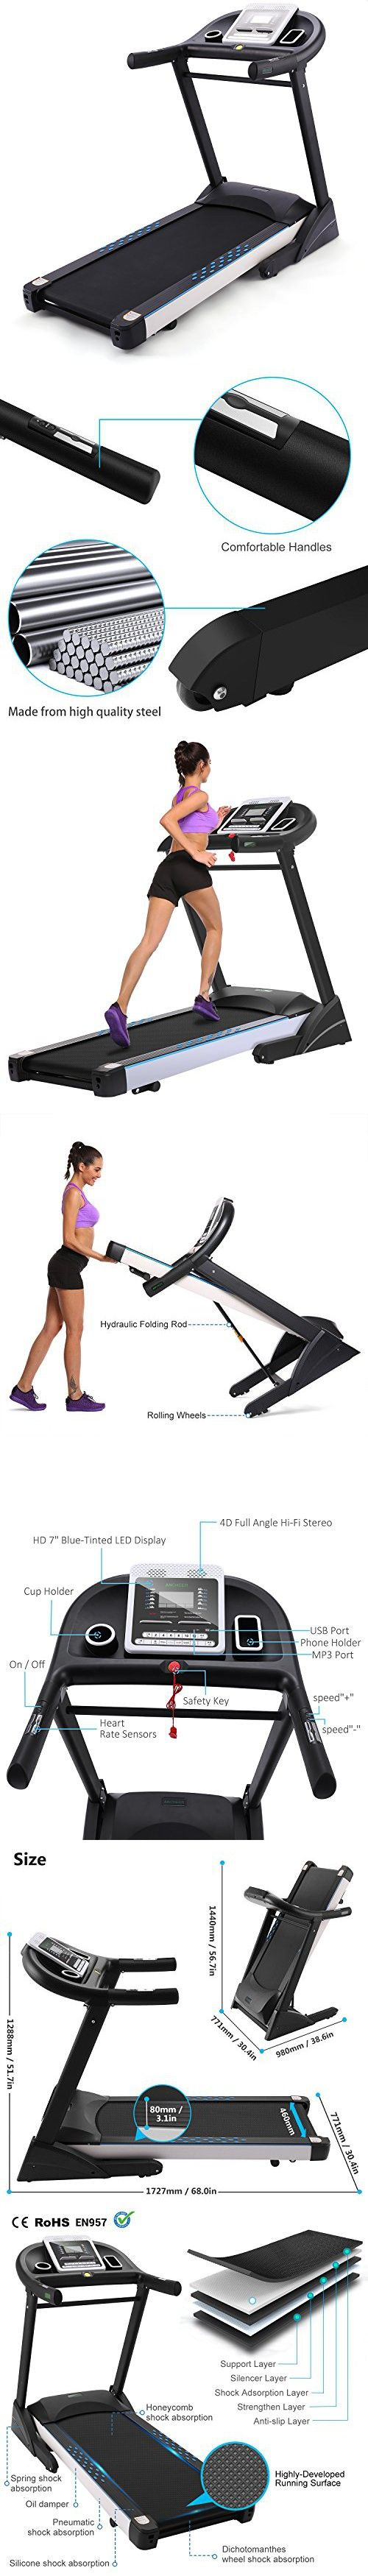 Folding Electric Motorized Treadmill Exercise Portable Walking Running Gym Fitness Machine [US STOCK]